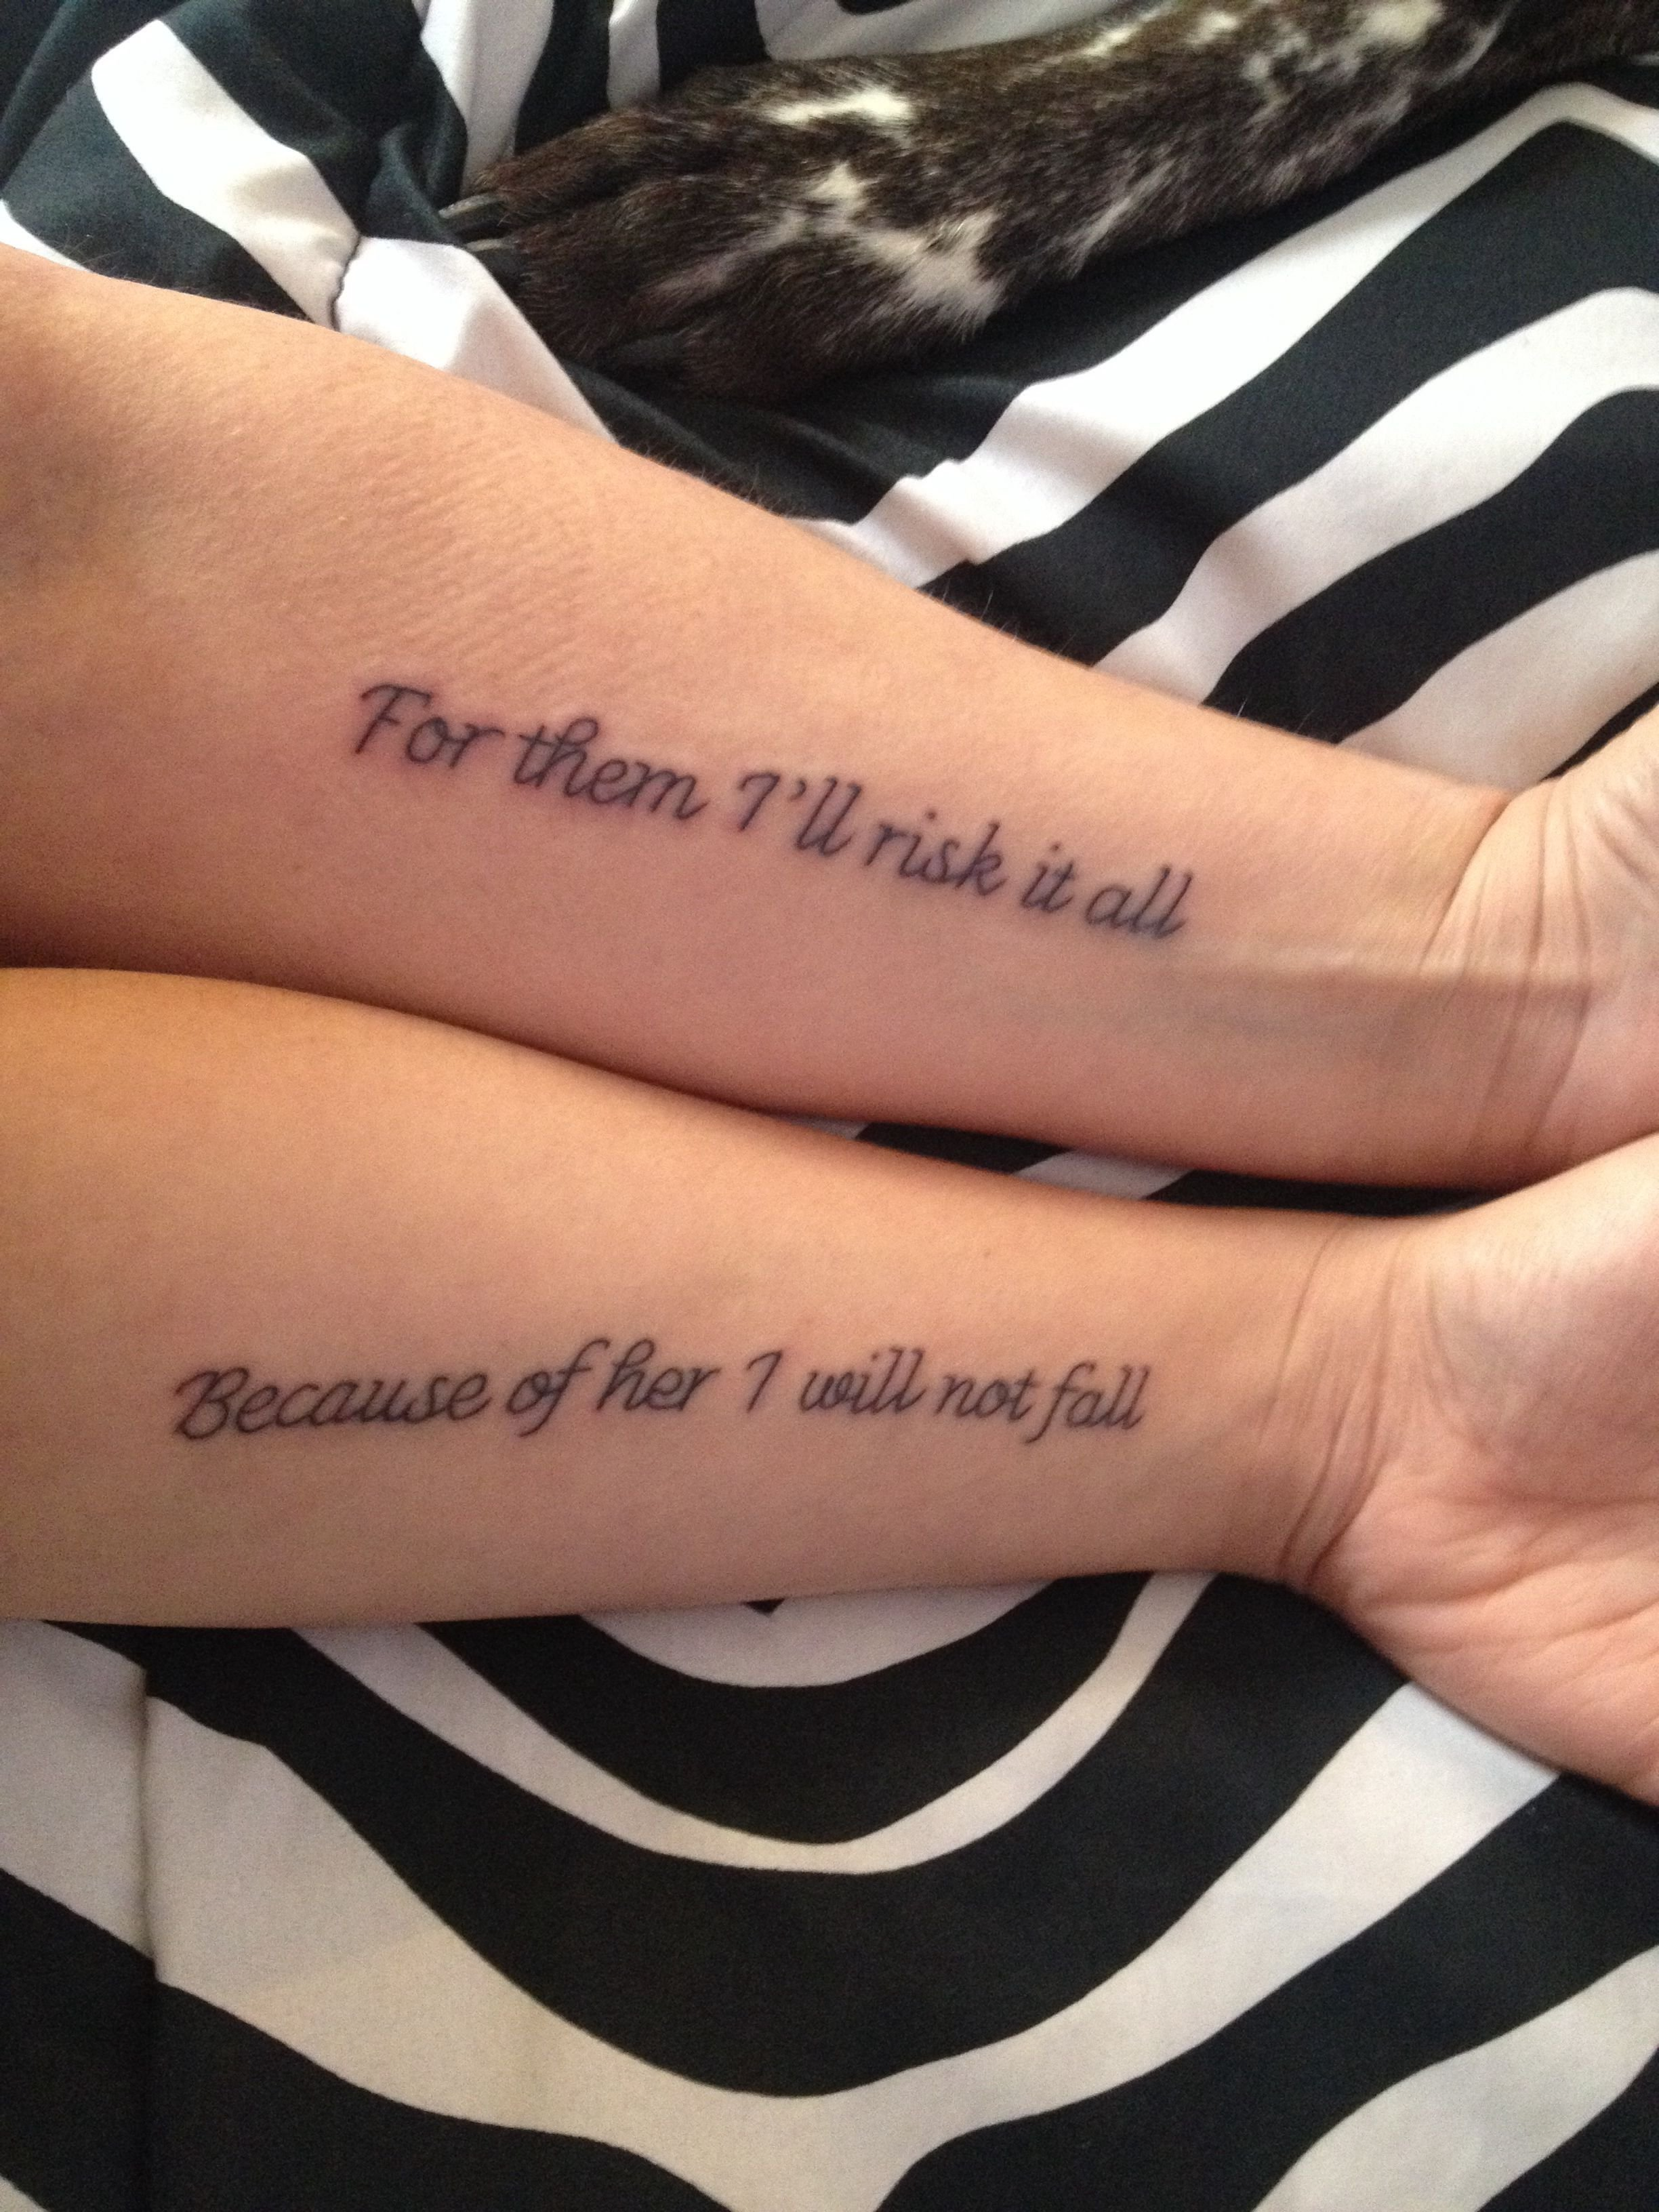 10 Fabulous Mother And Son Tattoo Ideas 12 pretty mother daughter tattoo designs daughter tattoos tattoo 1